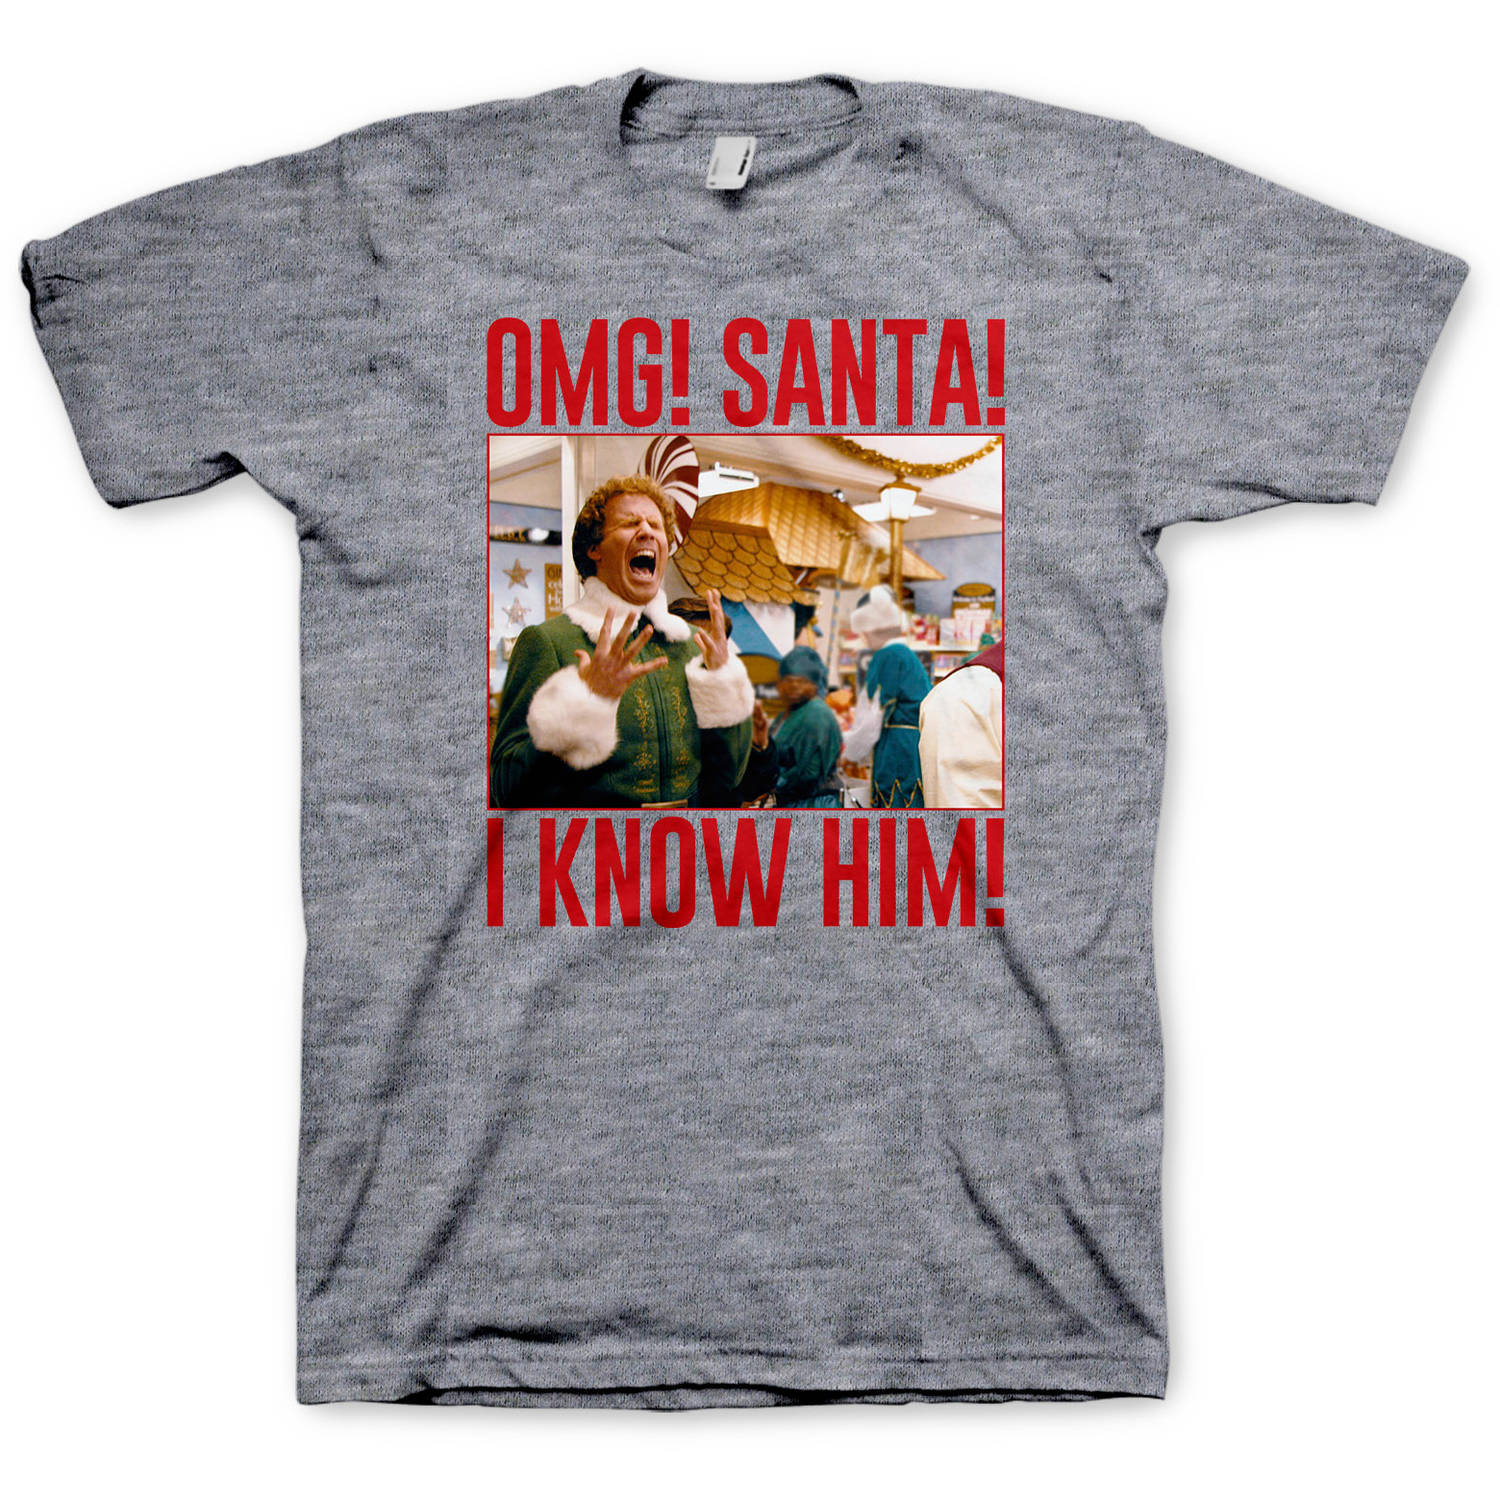 Elf OMG! Santa! I know him! Men's Graphic Tee